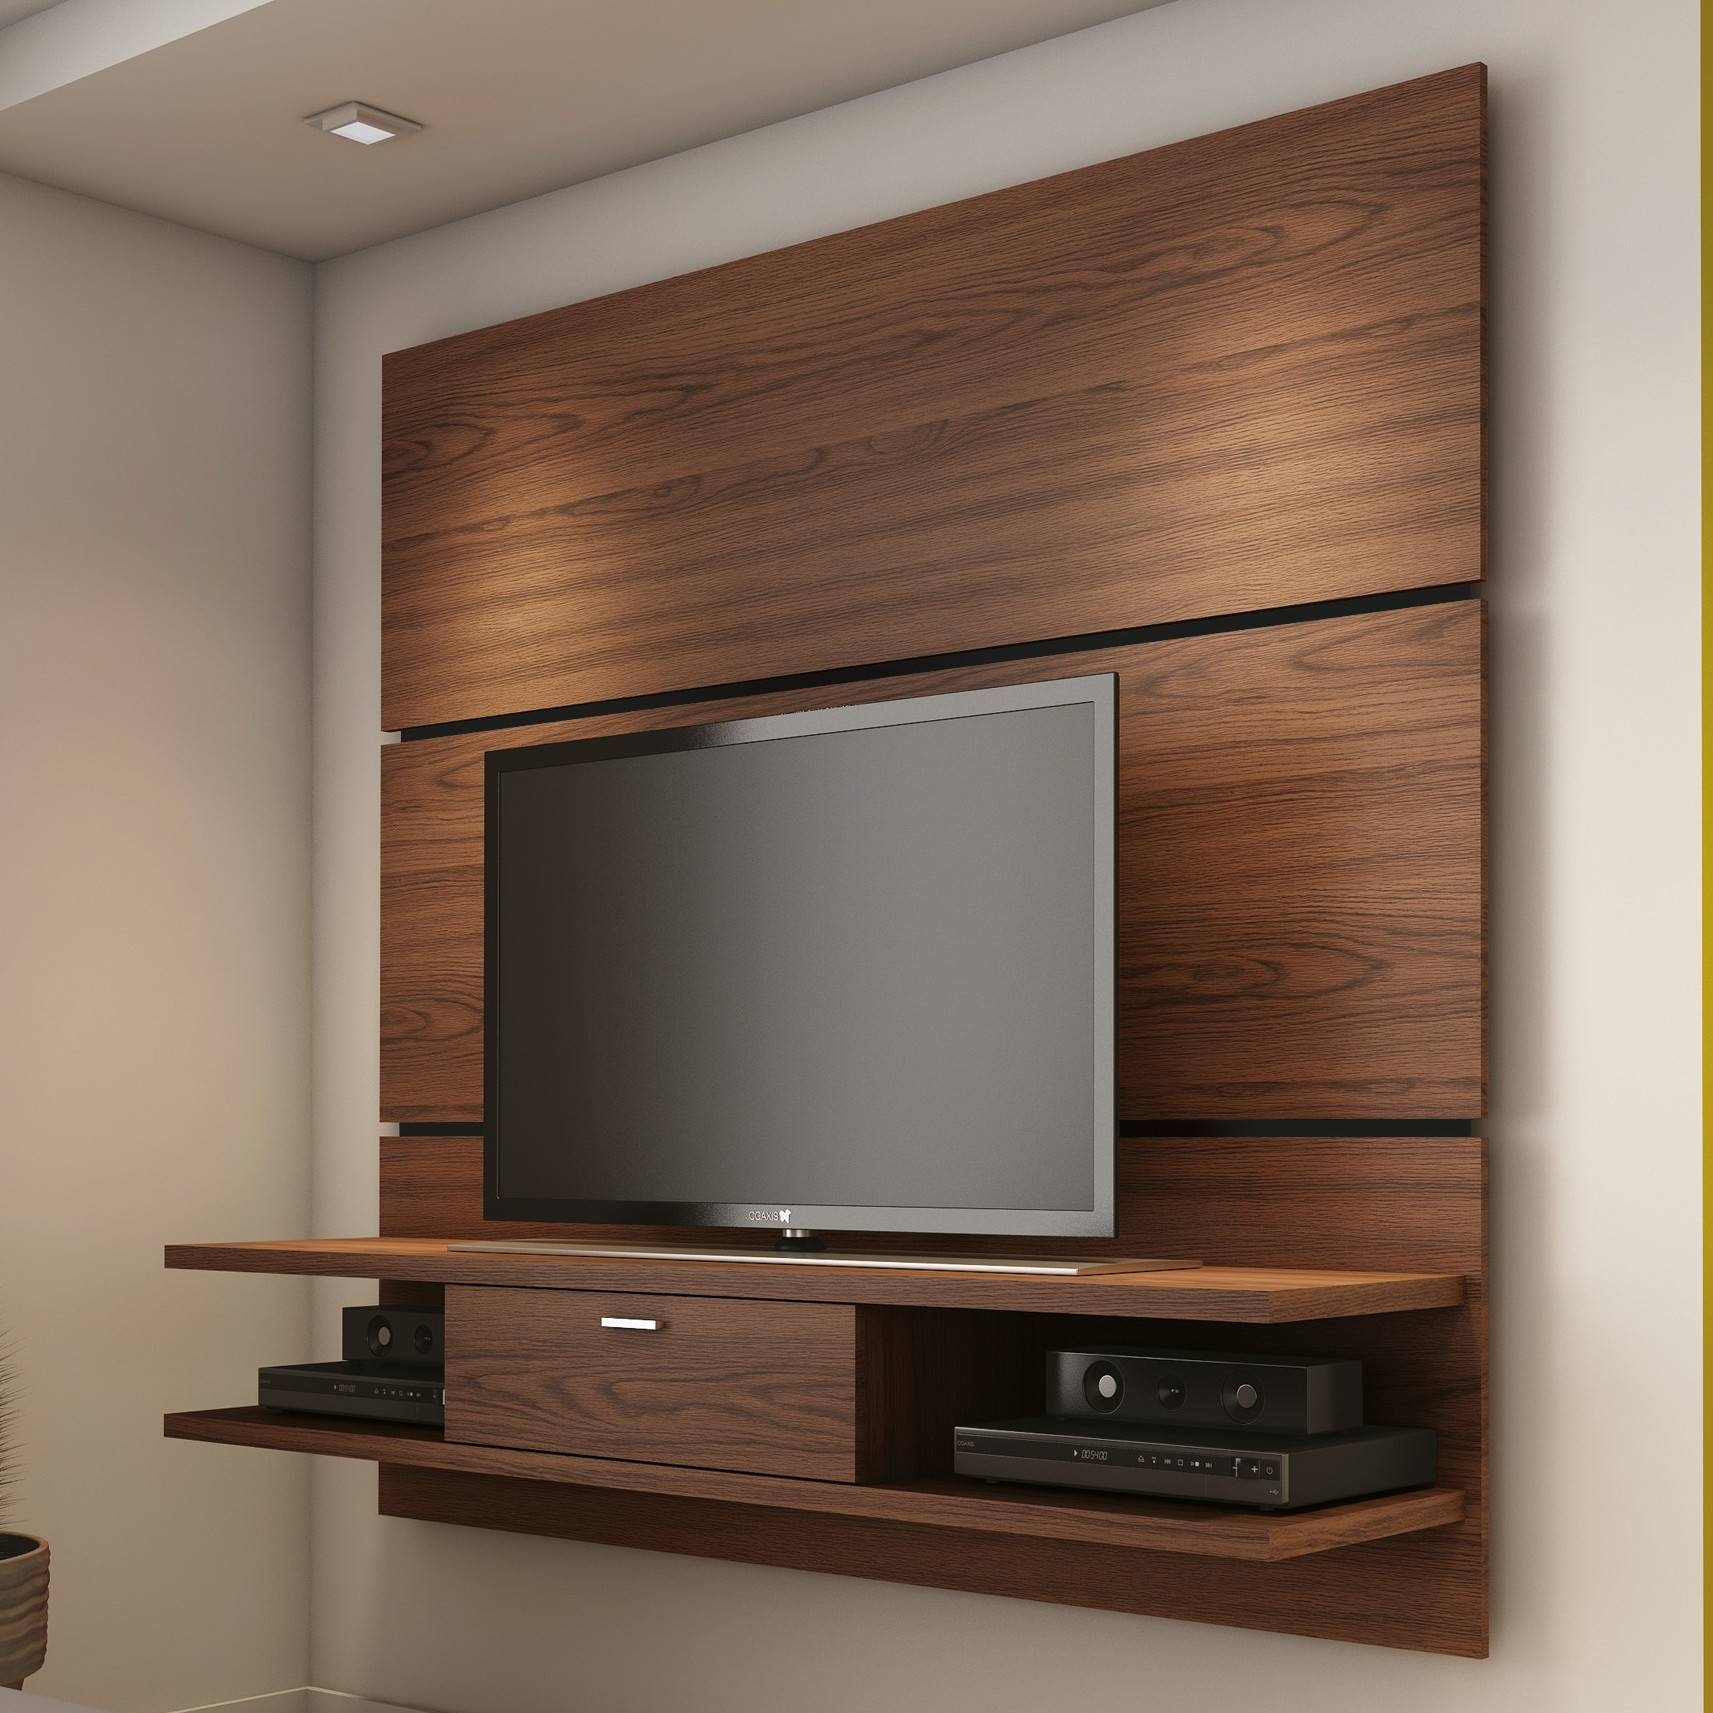 Wall Units: Inspiring Wall Hung Entertainment Unit Wall Mounted pertaining to Tv Cabinets and Wall Units (Image 15 of 15)